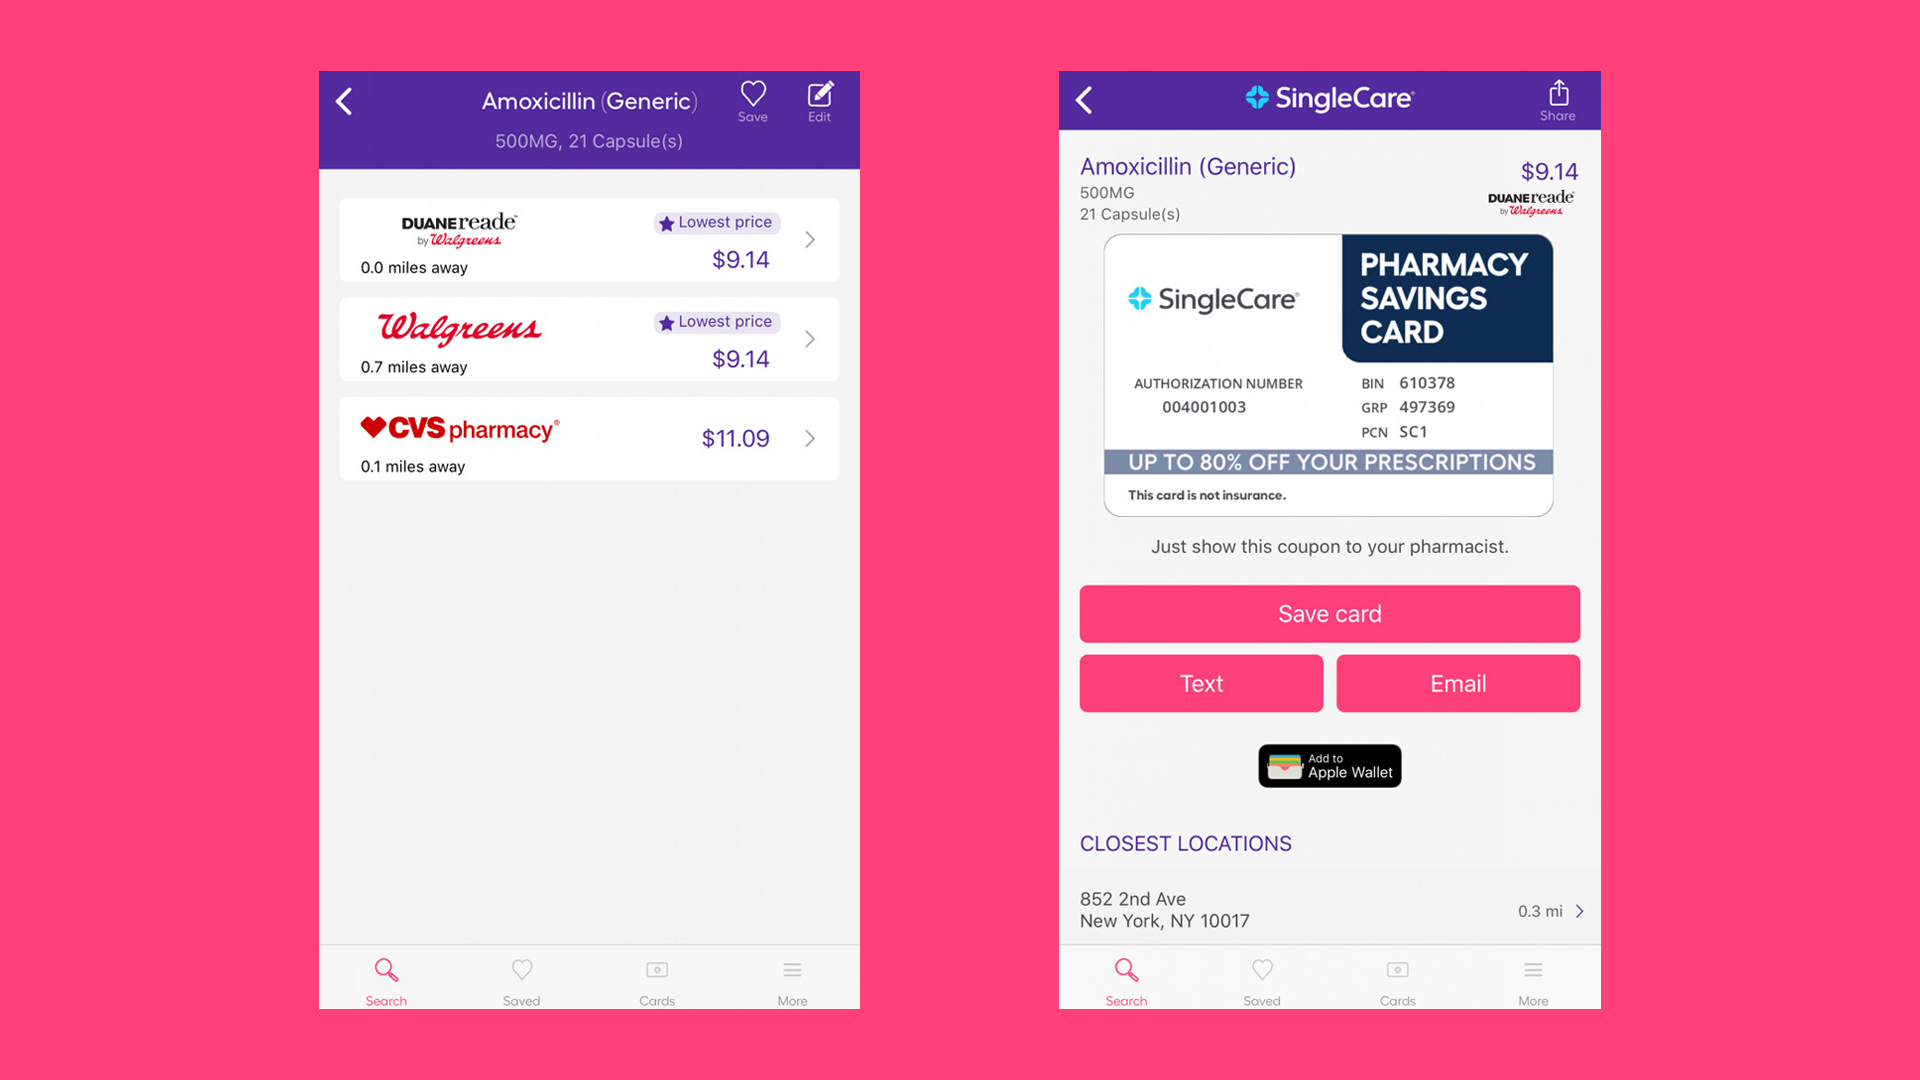 Comparing the best price for Amoxicillin on the SingleCare app